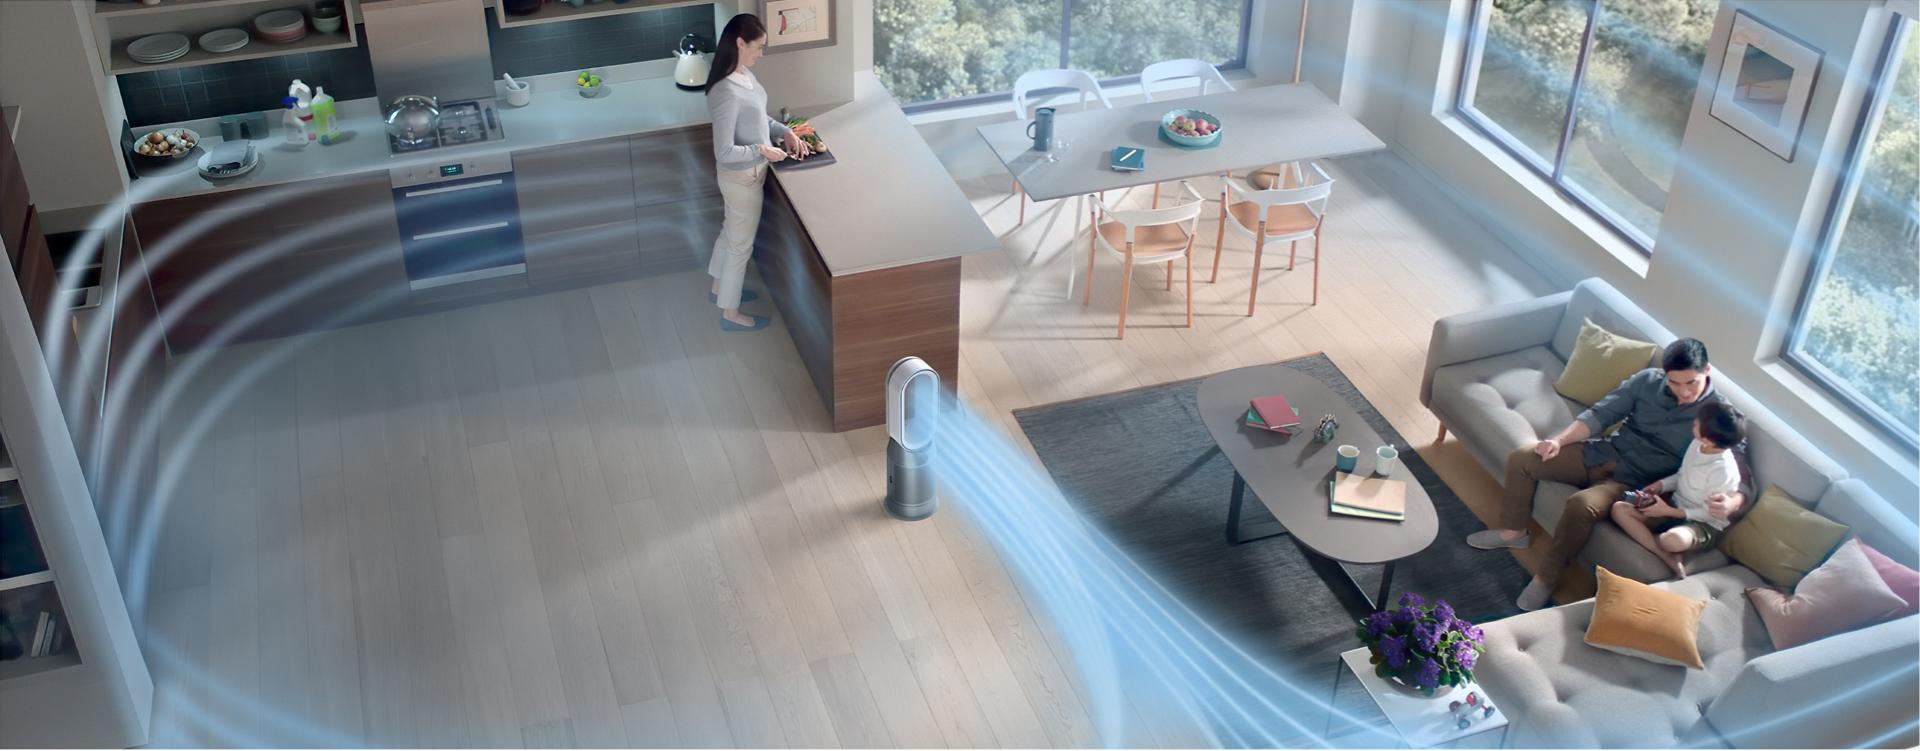 Dyson purifier hot+cool formaldehyde purifying a large living space